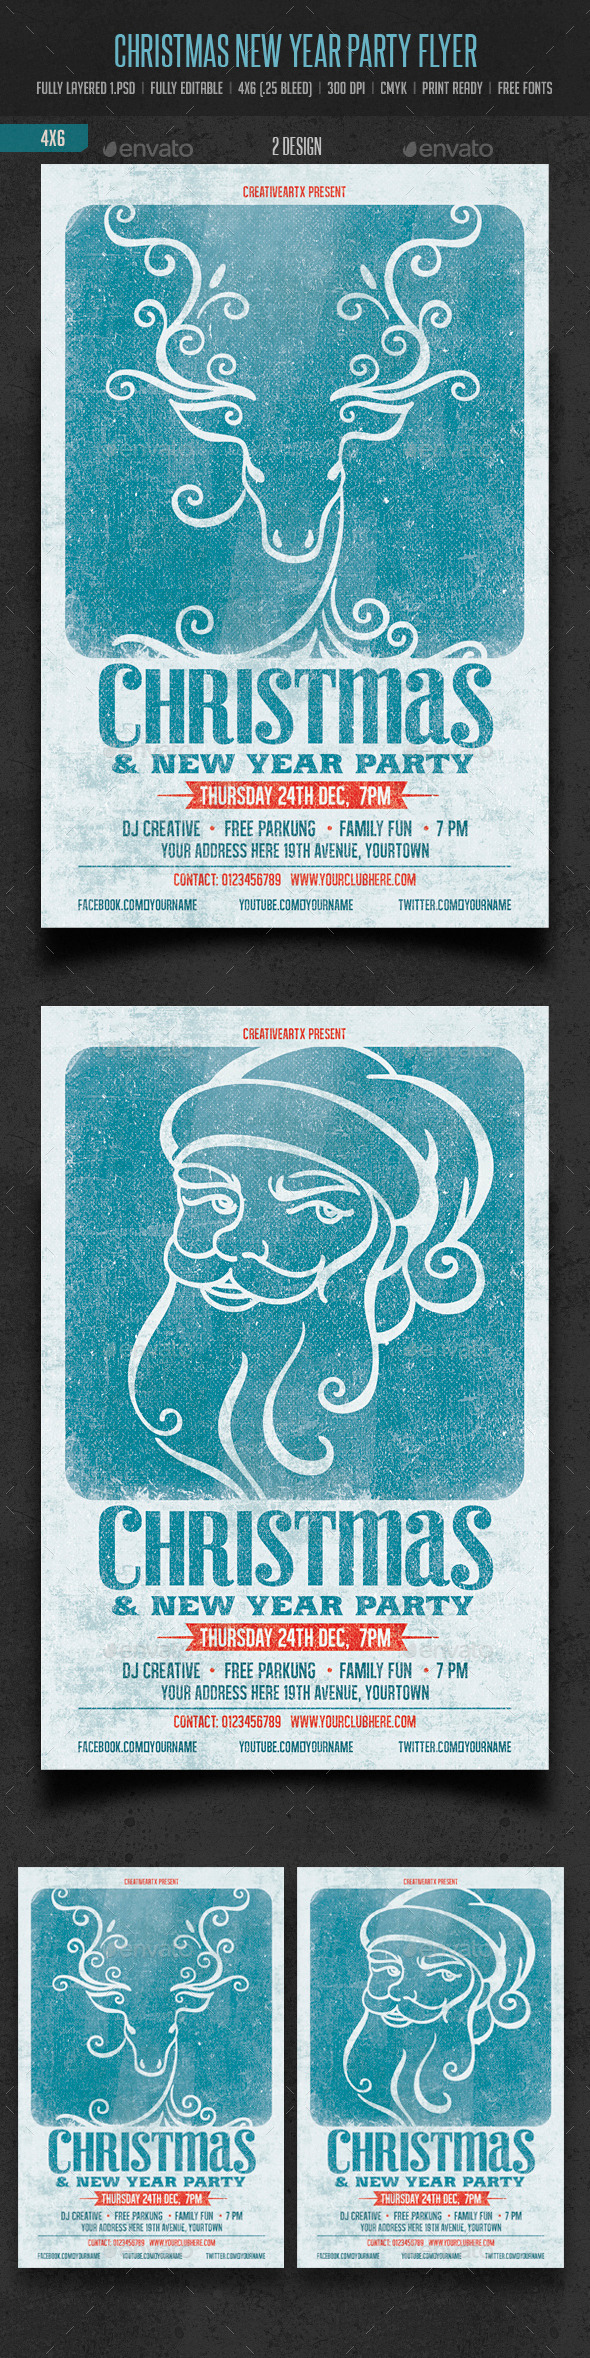 GraphicRiver Christmas & New Year Party Flyer 9613550